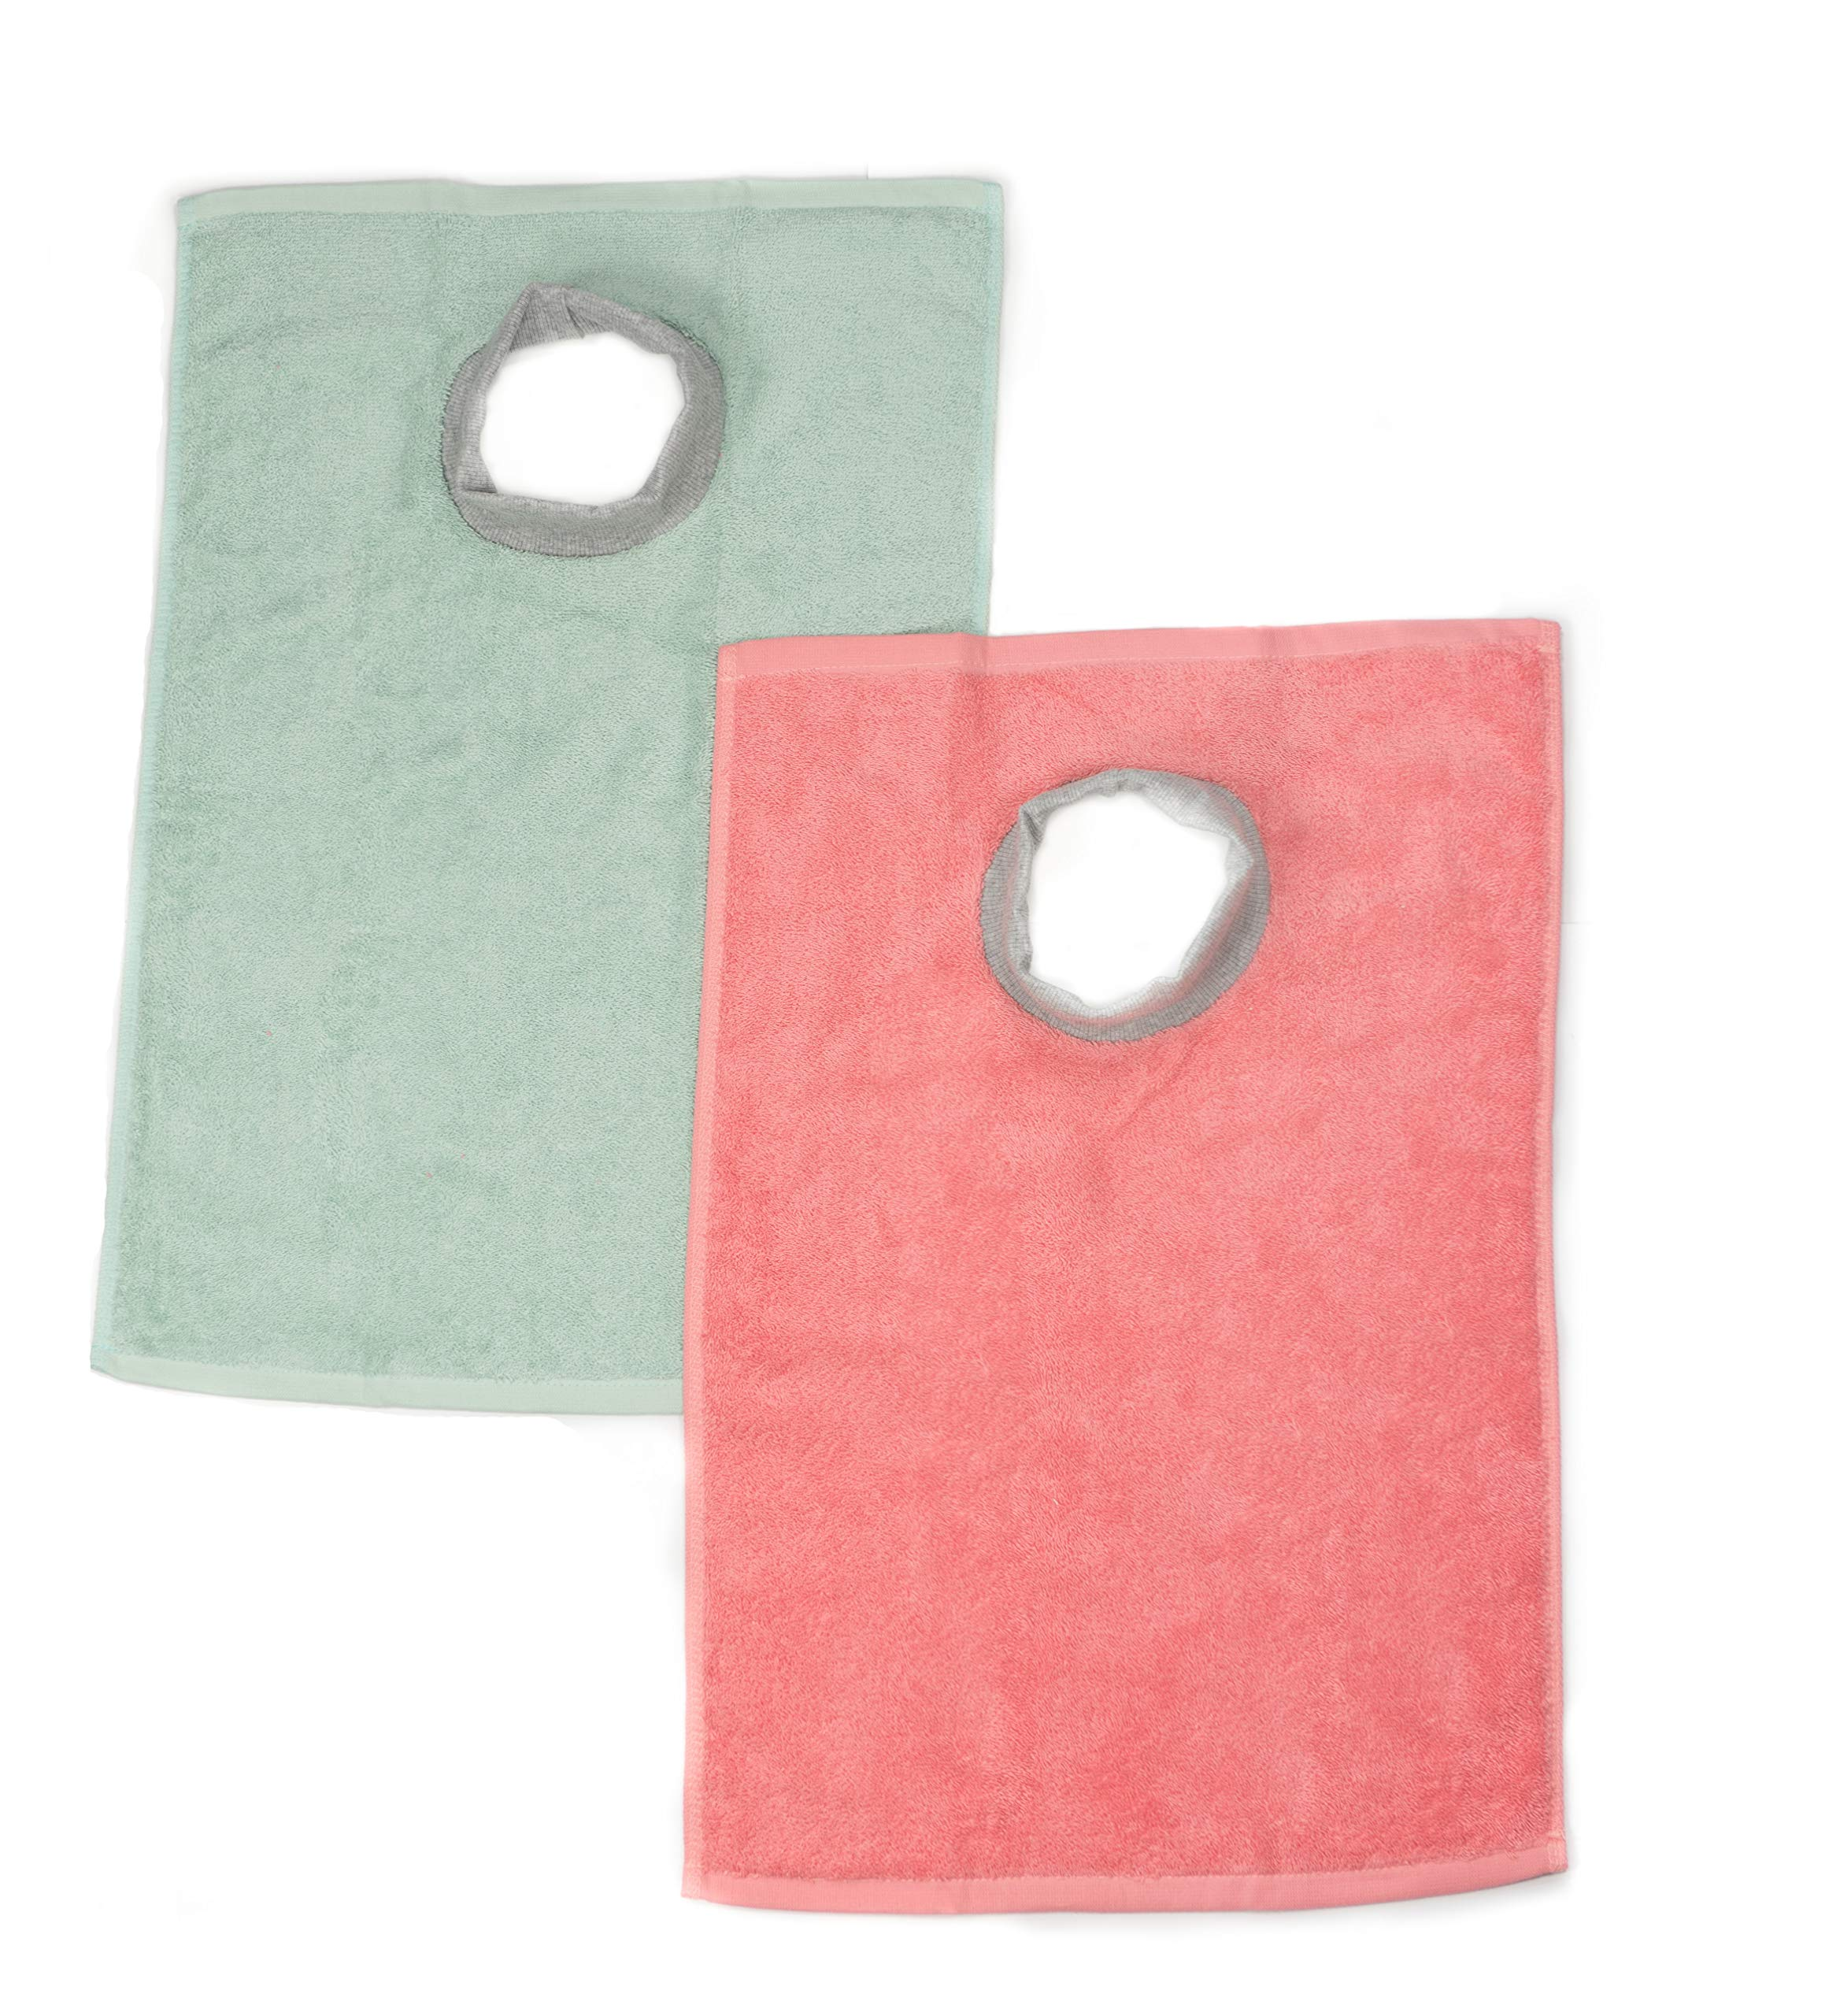 Full Coverage! Ultra Absorbent Baby/Toddler Best Terry Towel Bib - Super Soft 99% Cotton with Comfortable Ribbed Neck, 2-Pack Mint Green and Peach Coral (Pinkish), 6 Months - 4 Years